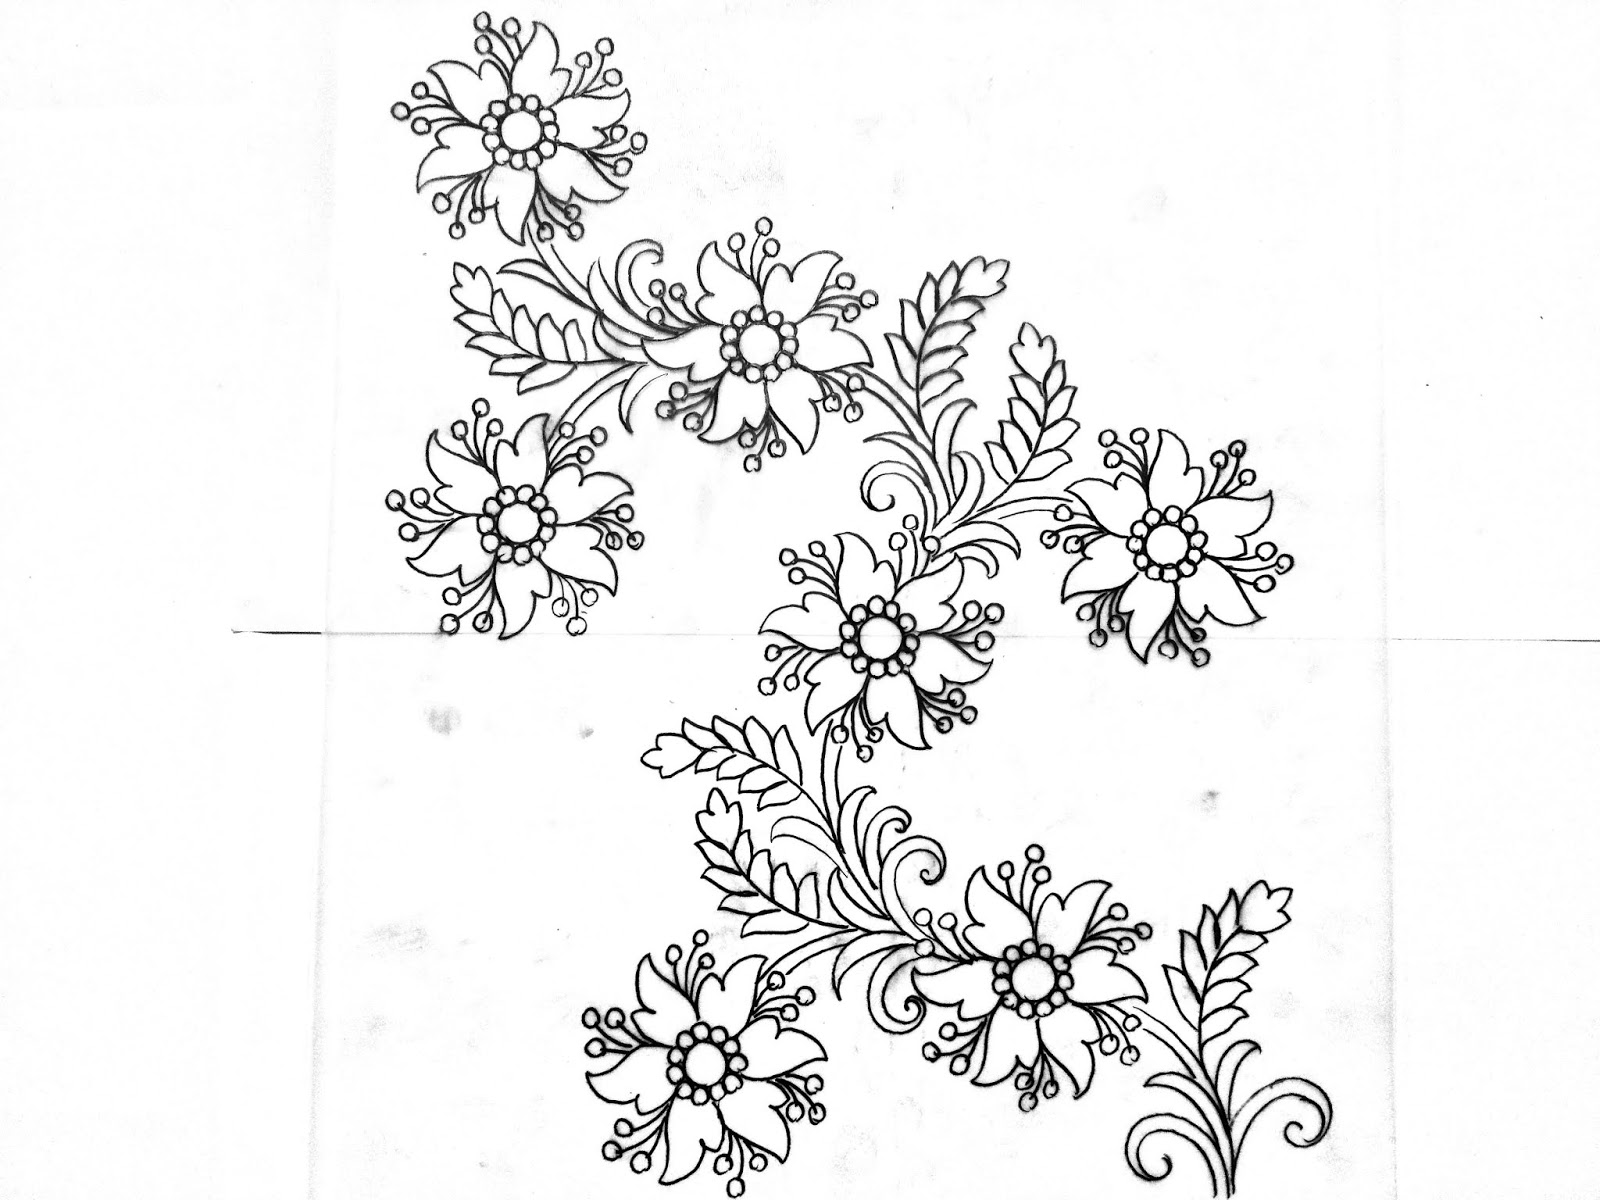 Latest Embroidery Flowers Designs Sketch On Tracing Paper Flower Design Drawing For Hand Works Saree Design,1920s Interior Design Australia